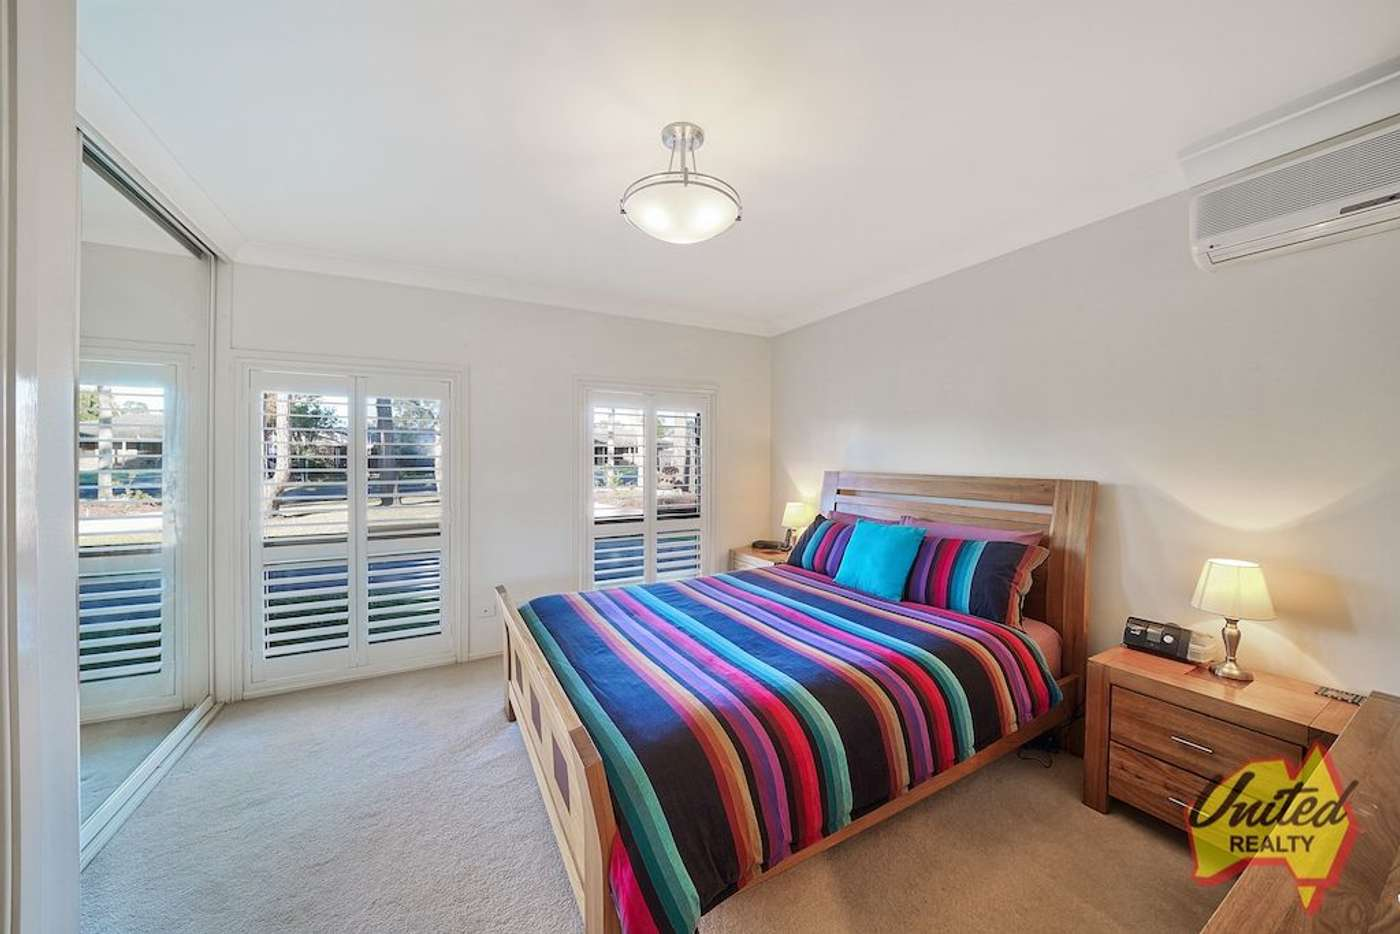 Seventh view of Homely house listing, 23 Market Street, Tahmoor NSW 2573